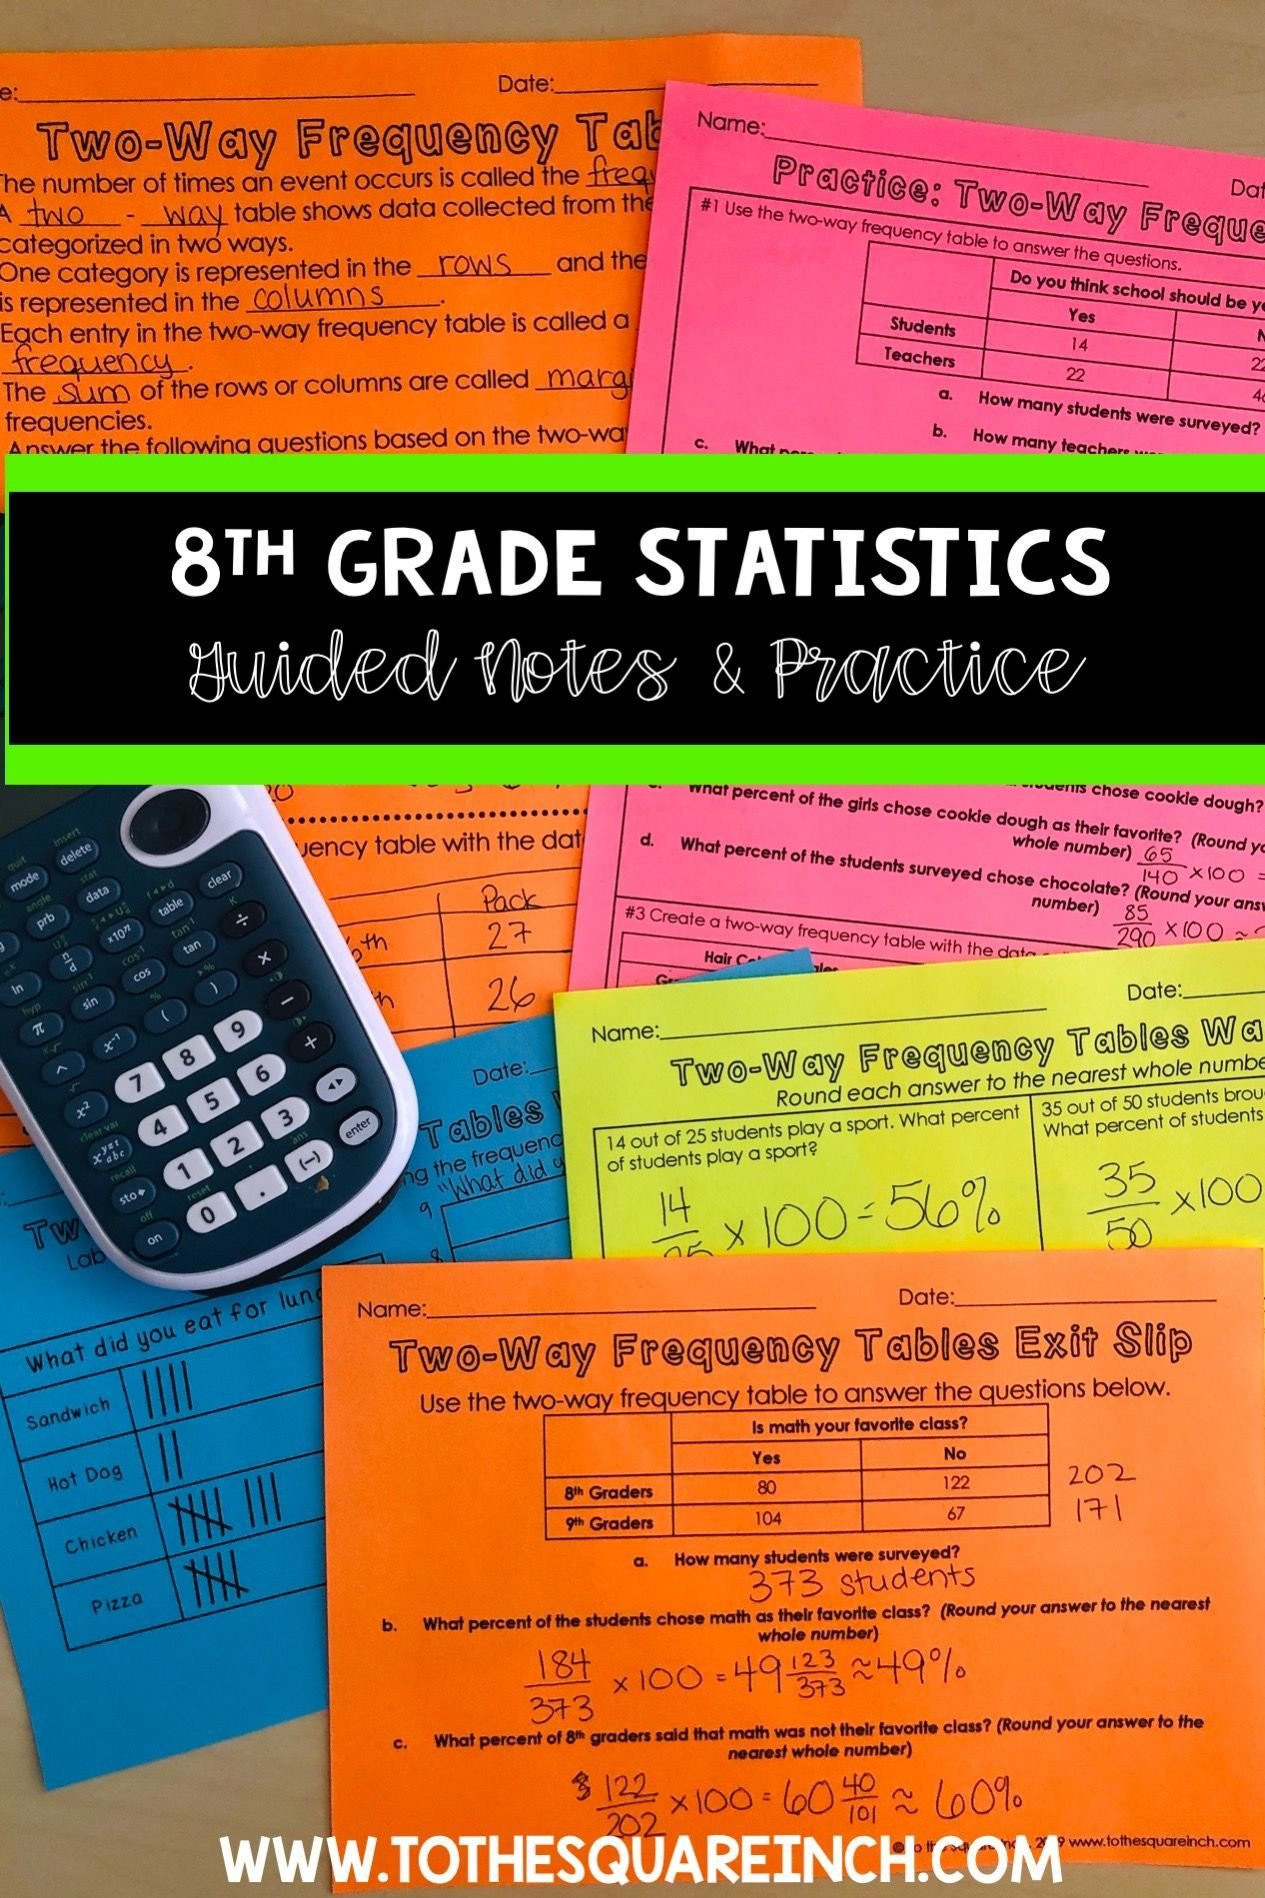 Boyle039s Law Worksheet Answer Key 20 Two Way Frequency Tables Worksheet